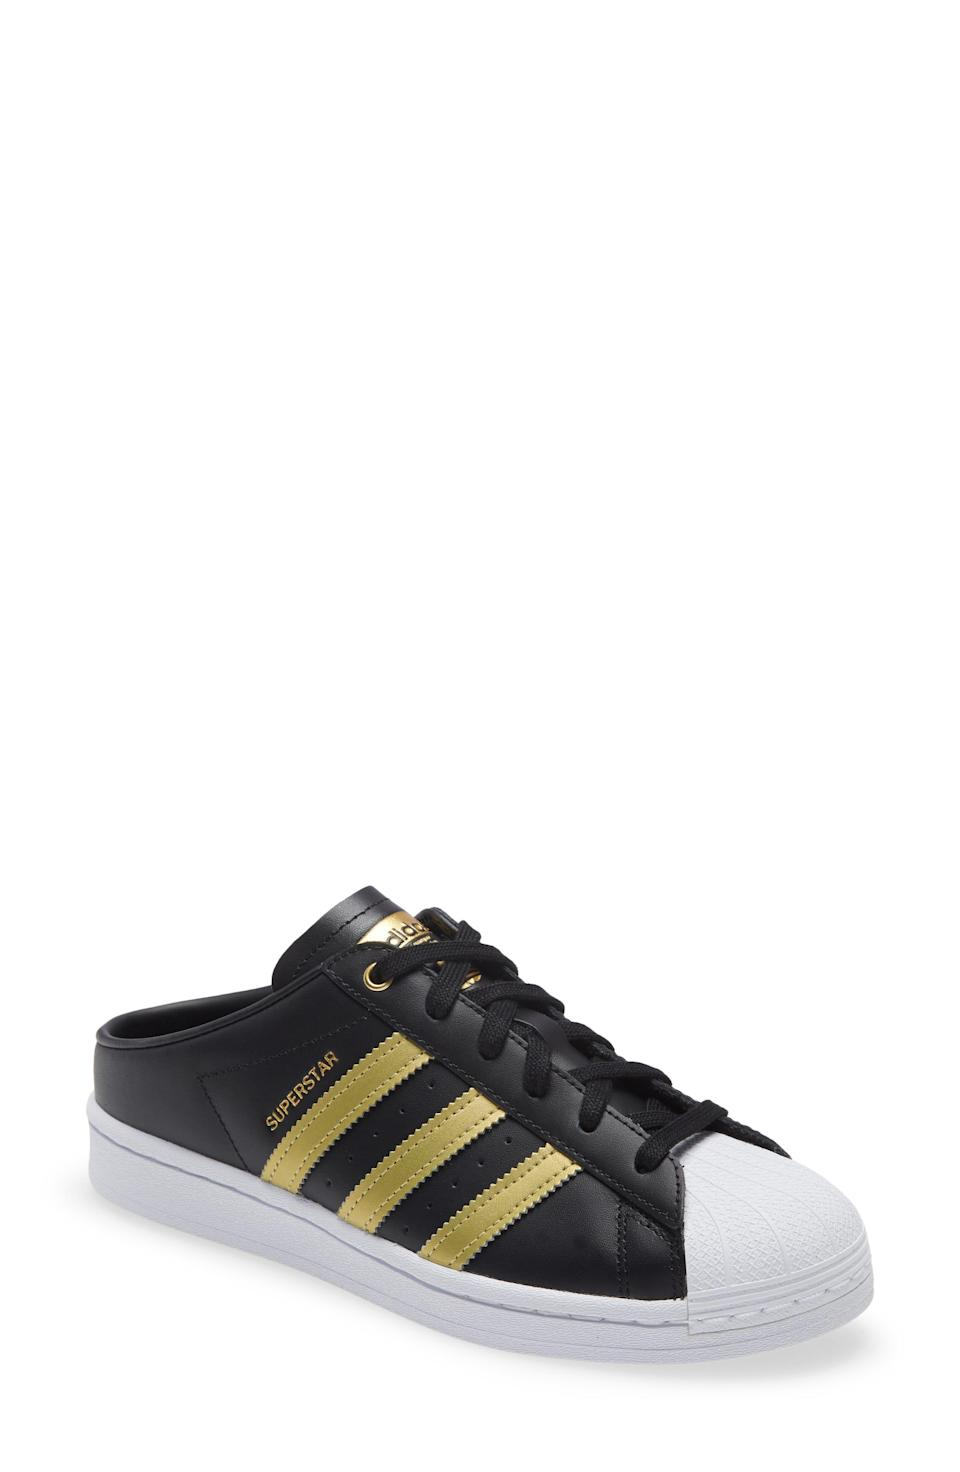 """<p><strong>ADIDAS</strong></p><p>nordstrom.com</p><p><strong>$85.00</strong></p><p><a href=""""https://go.redirectingat.com?id=74968X1596630&url=https%3A%2F%2Fwww.nordstrom.com%2Fs%2Fadidas-superstar-mule-sneaker-women%2F5654167&sref=https%3A%2F%2Fwww.womenshealthmag.com%2Ffitness%2Fg36063460%2Fbest-black-sneakers%2F"""" rel=""""nofollow noopener"""" target=""""_blank"""" data-ylk=""""slk:Shop Now"""" class=""""link rapid-noclick-resp"""">Shop Now</a></p><p>There's nothing like a good slip-on sneaker. For the days I'm too lazy to bend down and tie my laces (which is most of the time), slip-ons like these are an essential. </p><p>Plus, the gold accent makes these super stylish—a go-to for fun summer picnics when you want to take your shoes on and off.</p>"""